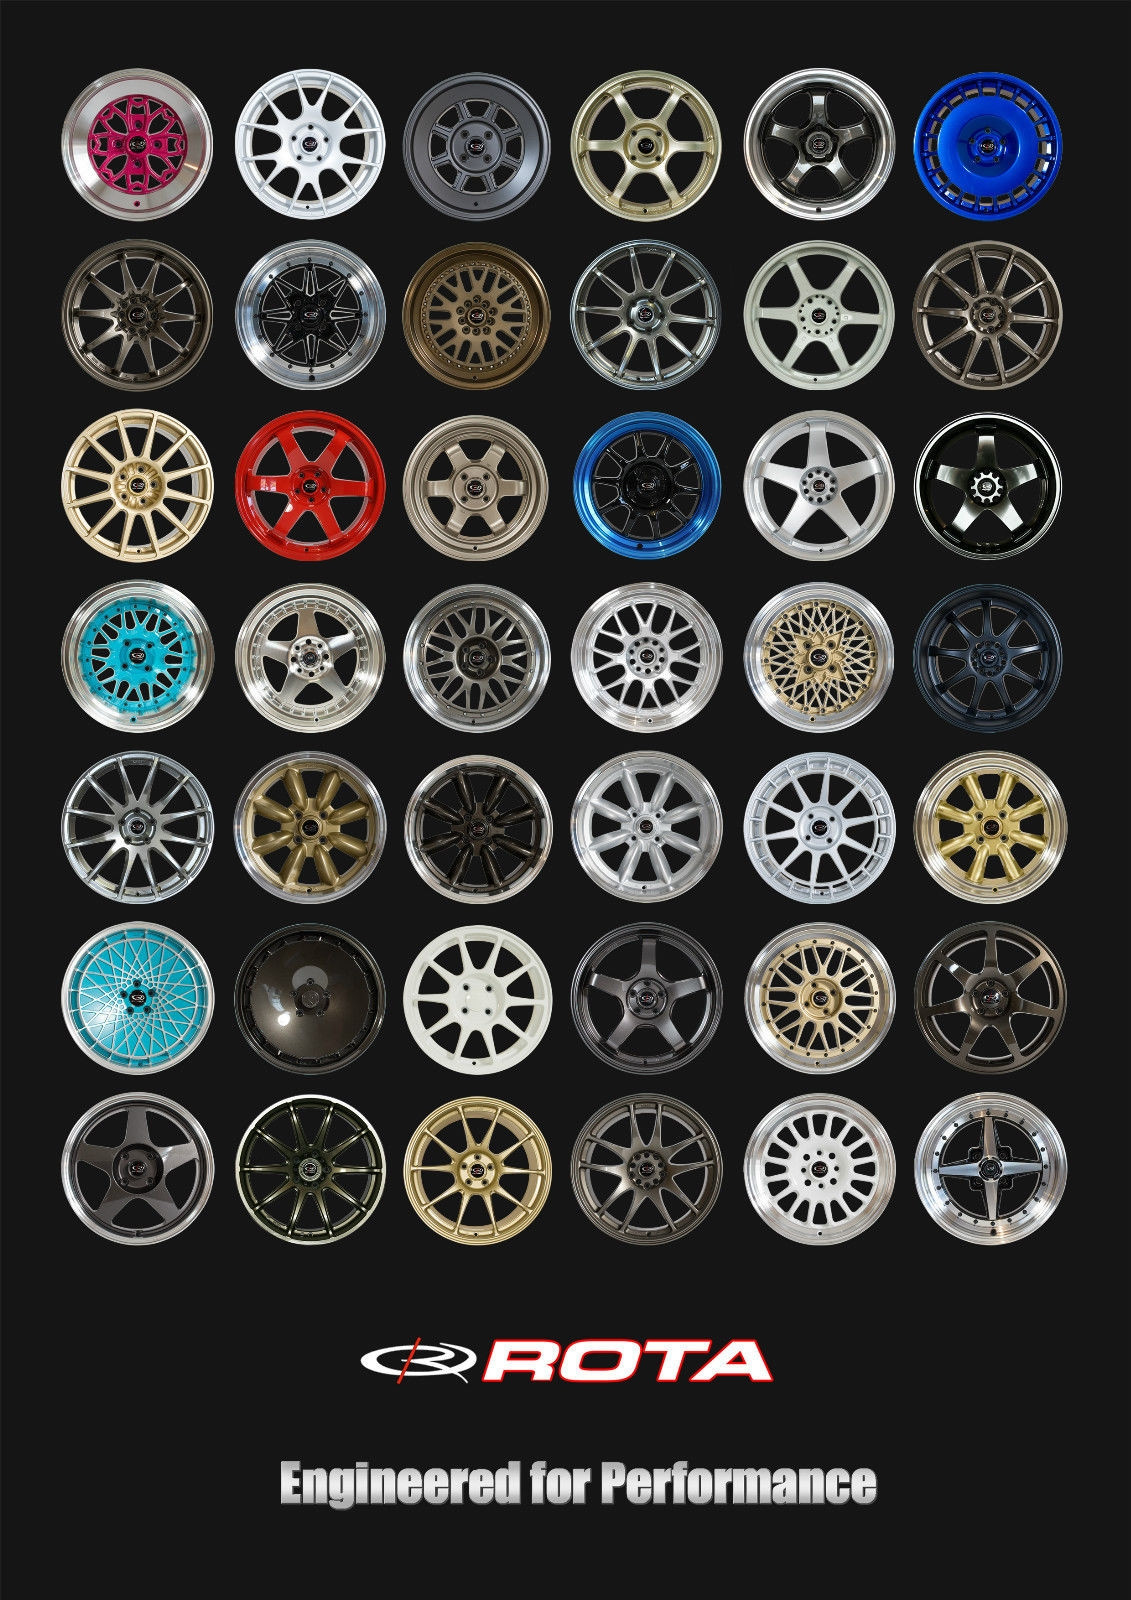 Retro Rota Wheels A1 Poster